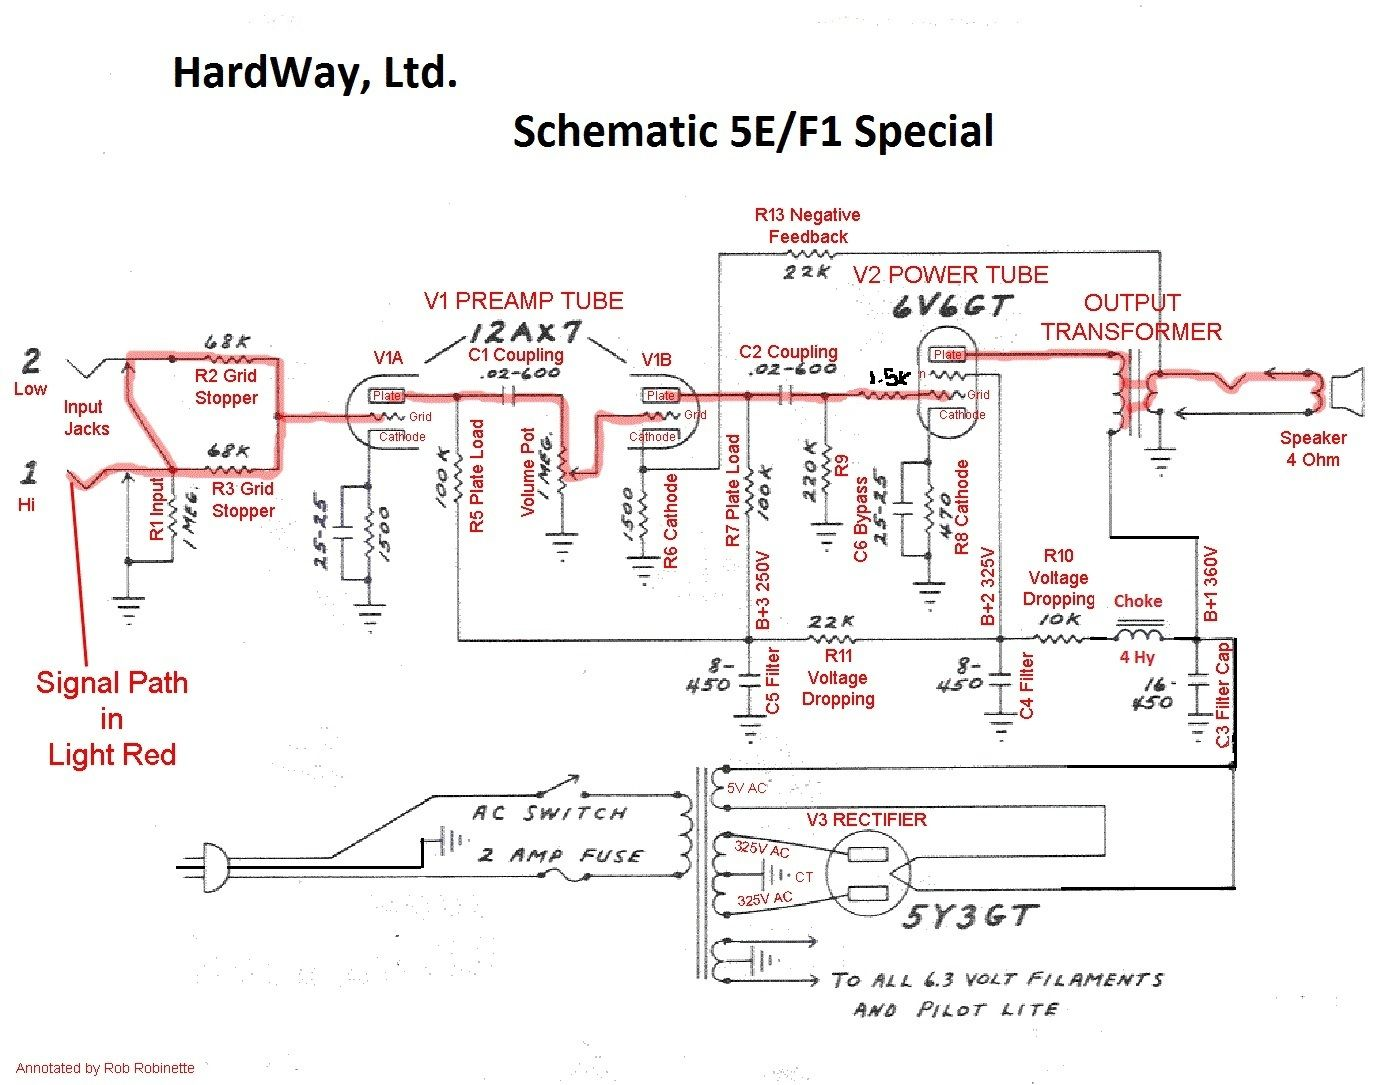 hight resolution of this is the schematic for the 5e f1 special amp